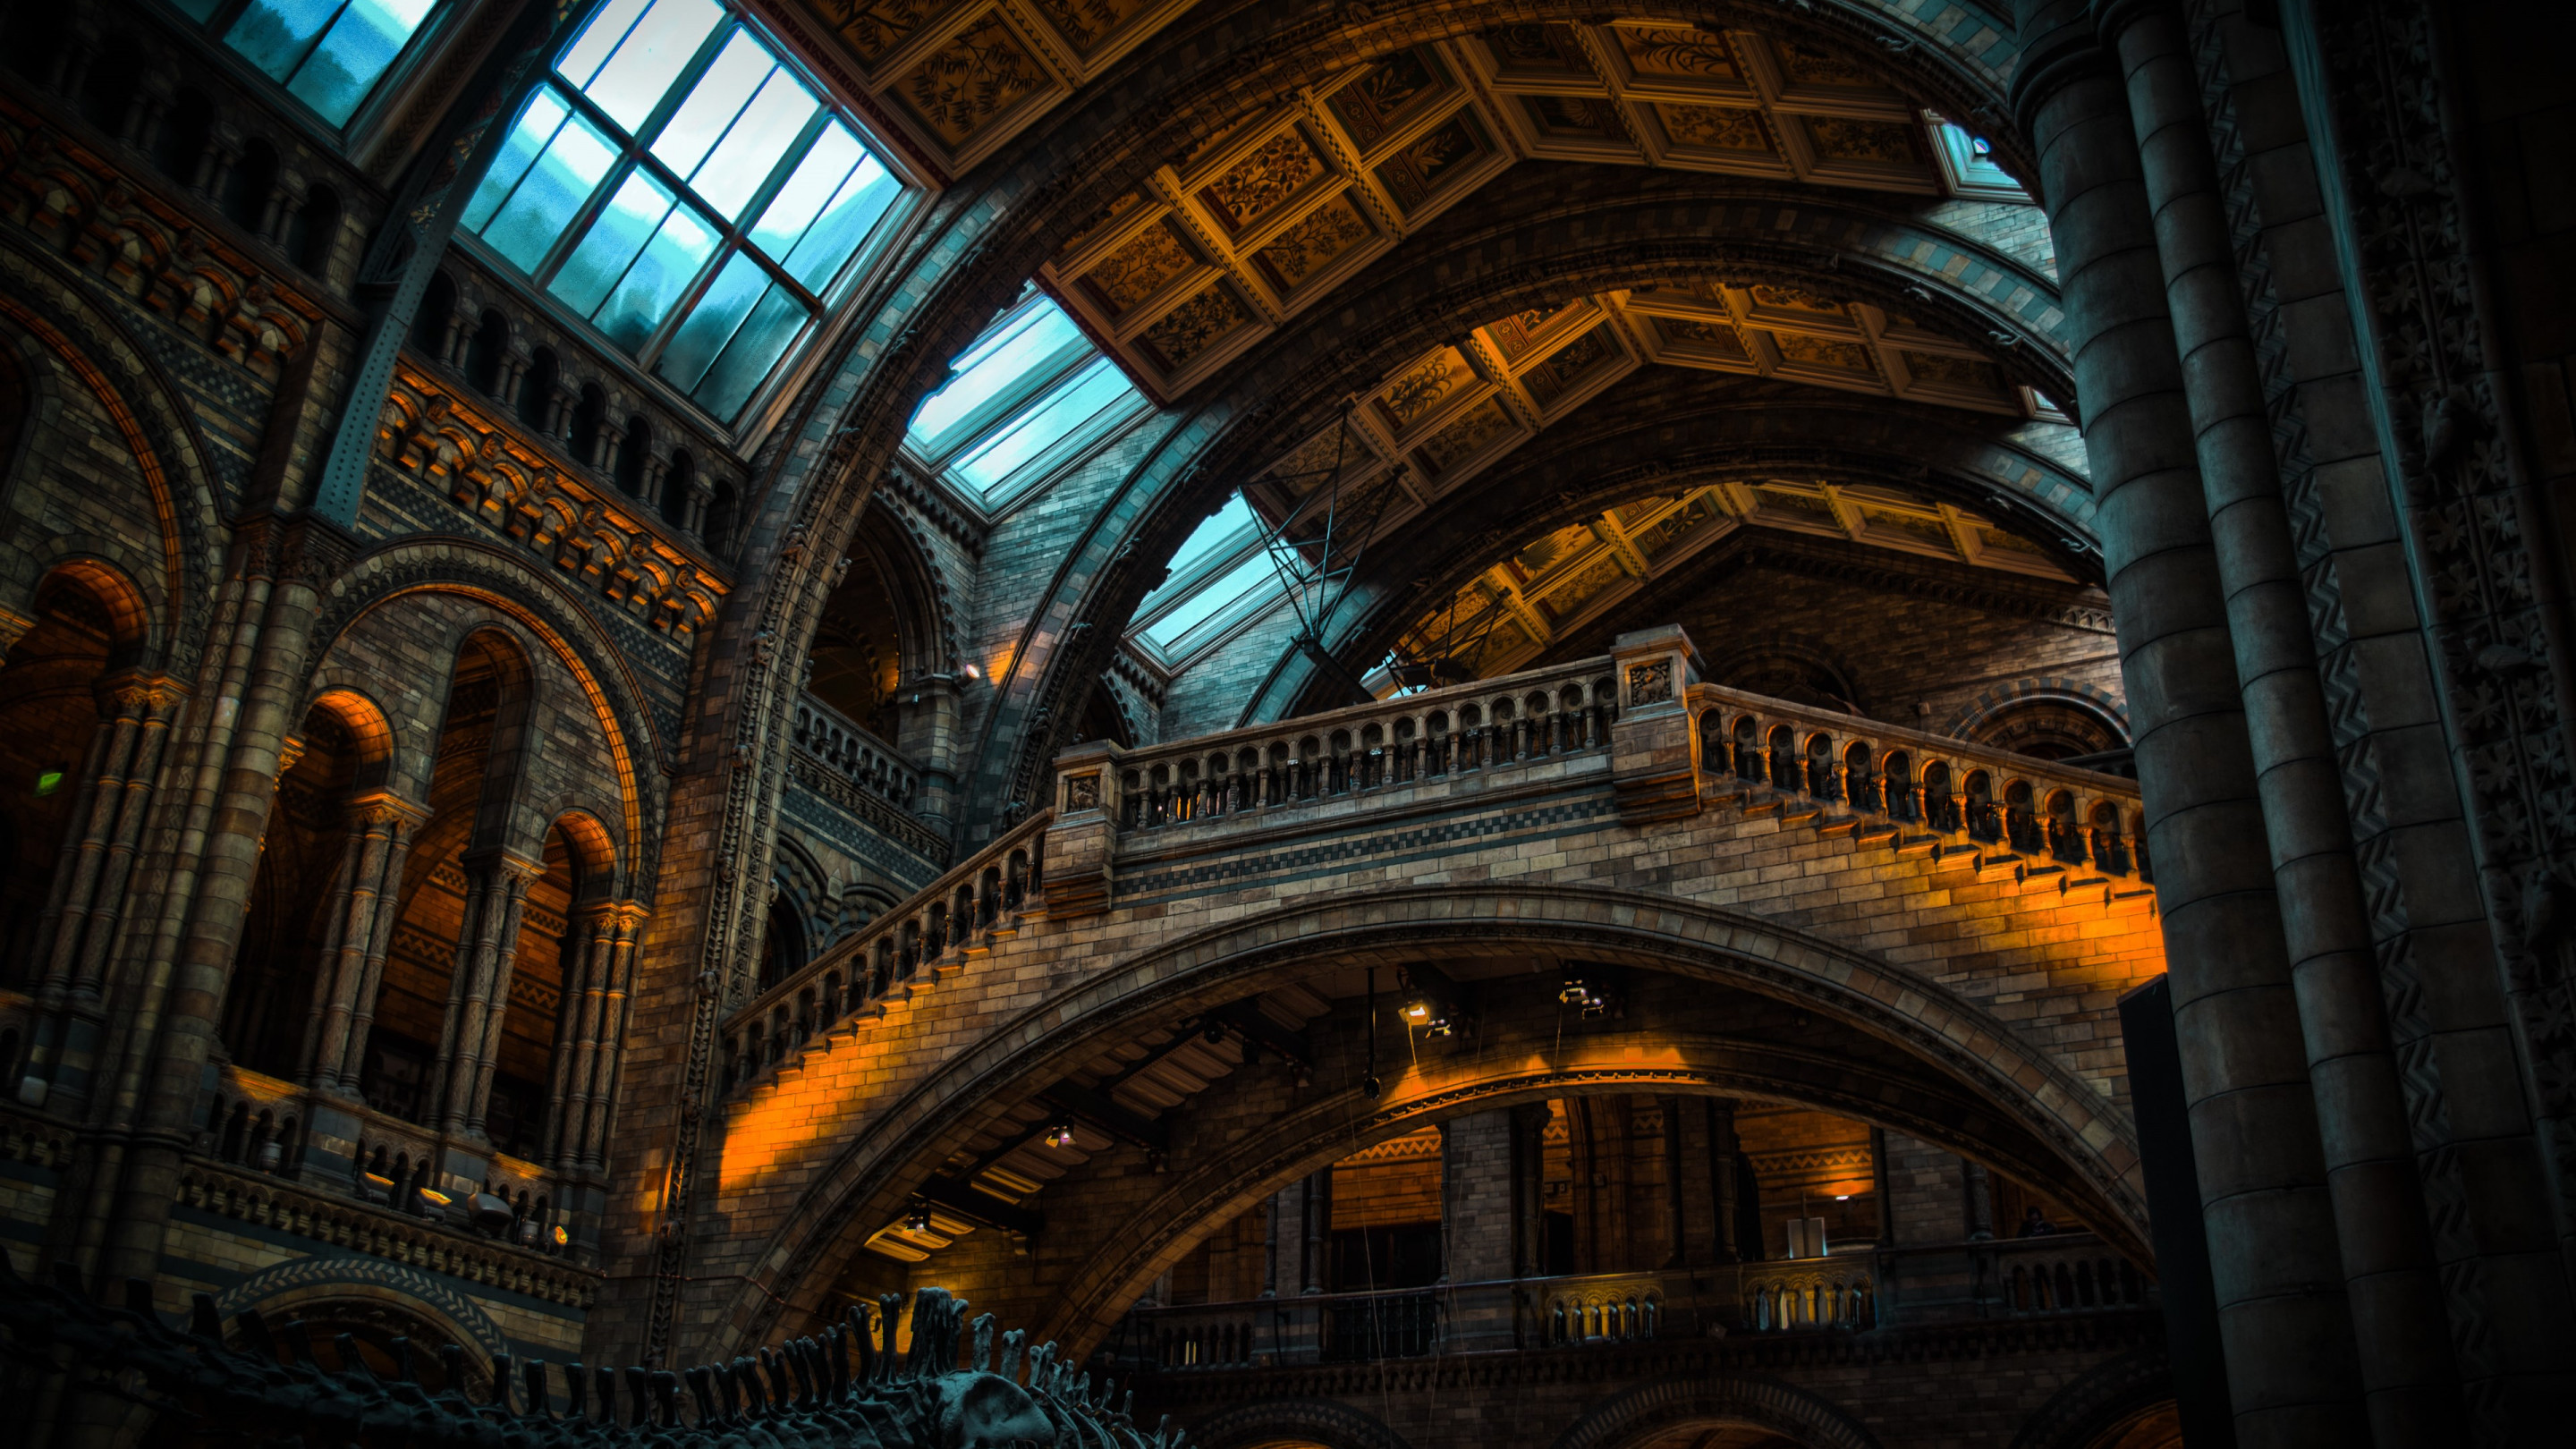 Inside of Natural History Museum from London | 2880x1620 wallpaper